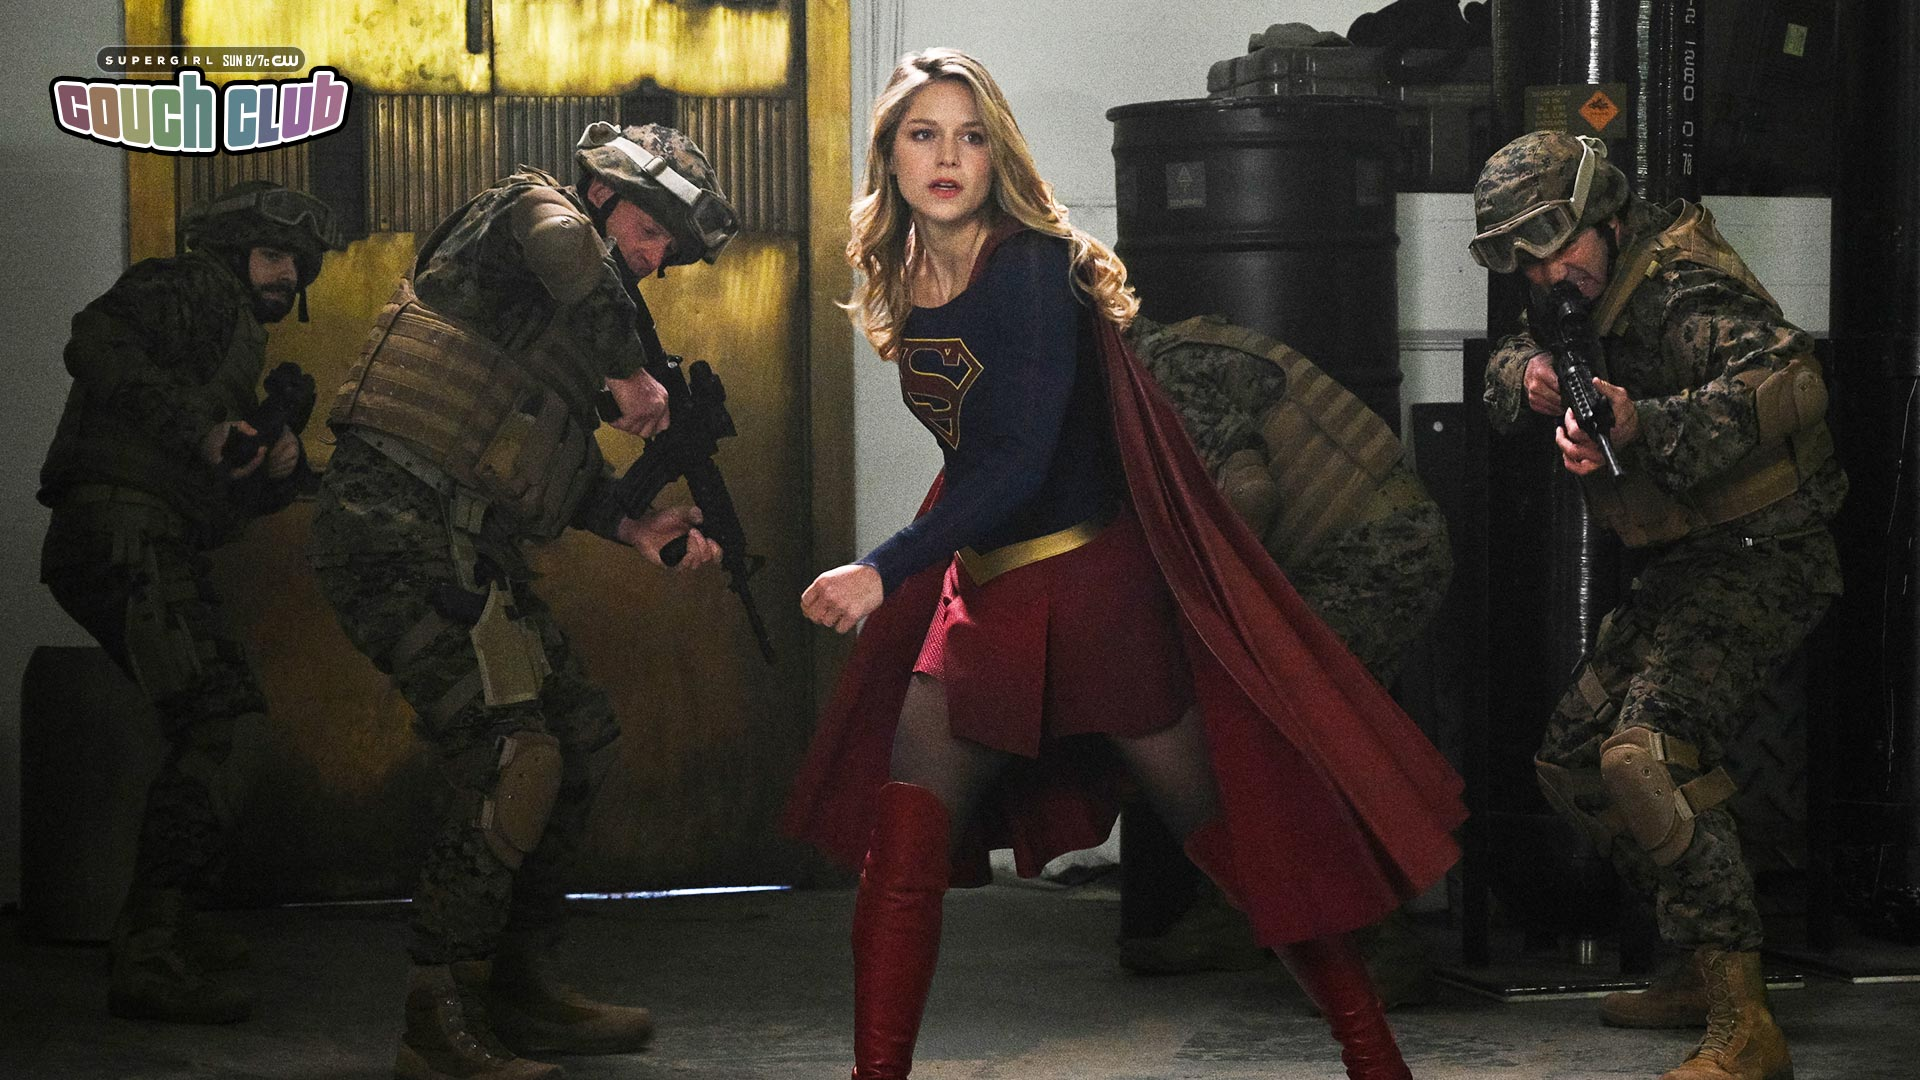 Supergirl Whats So Funny About Supergirl vs the Elite DC 1920x1080